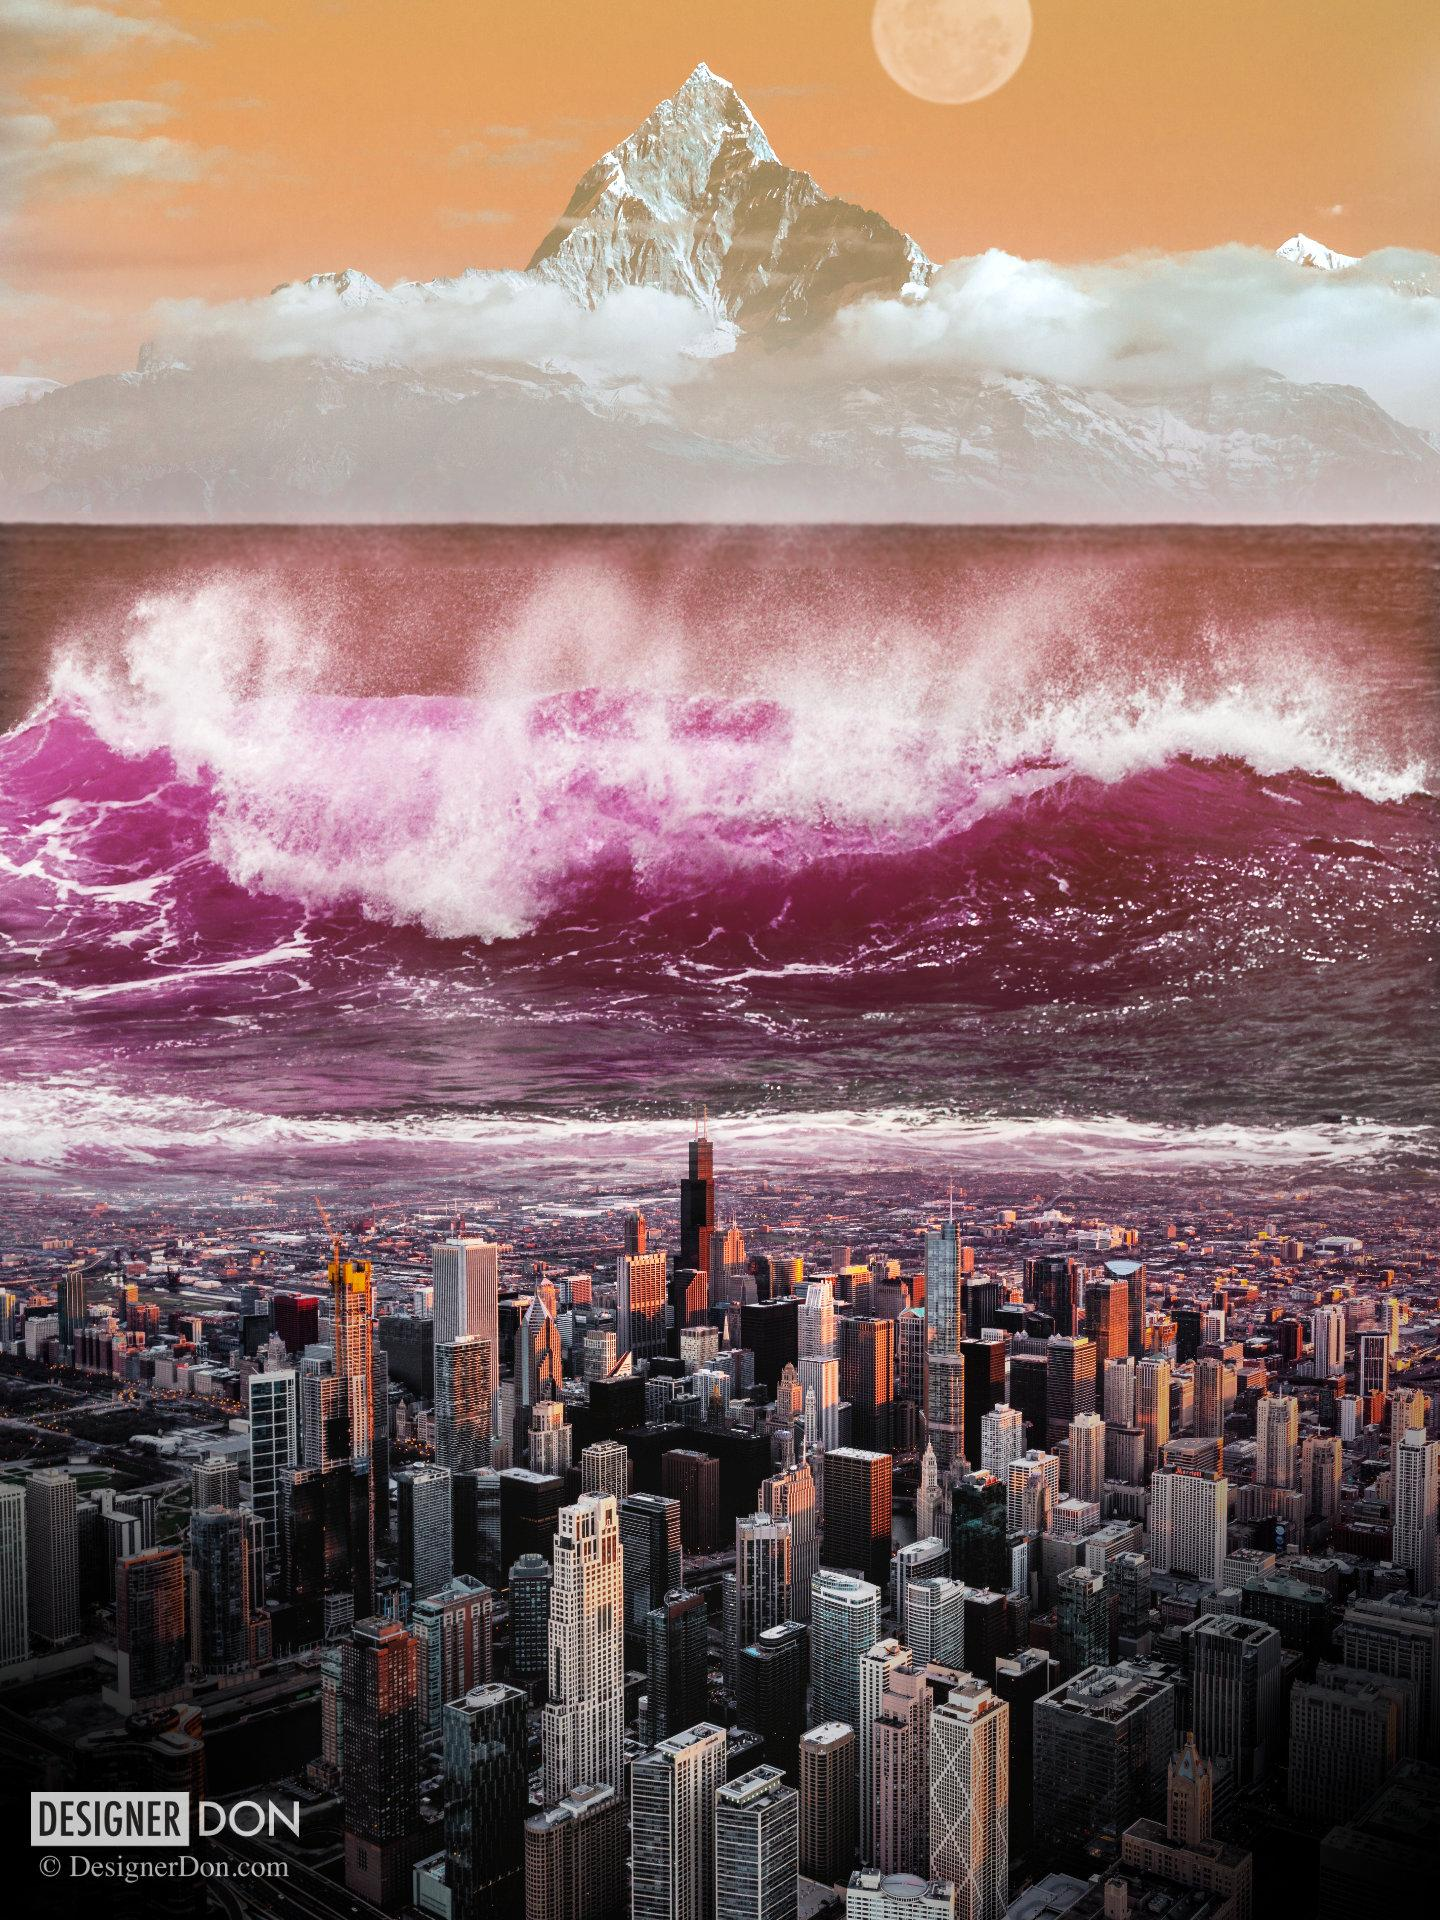 Photoshop Collage: Tidal Wave